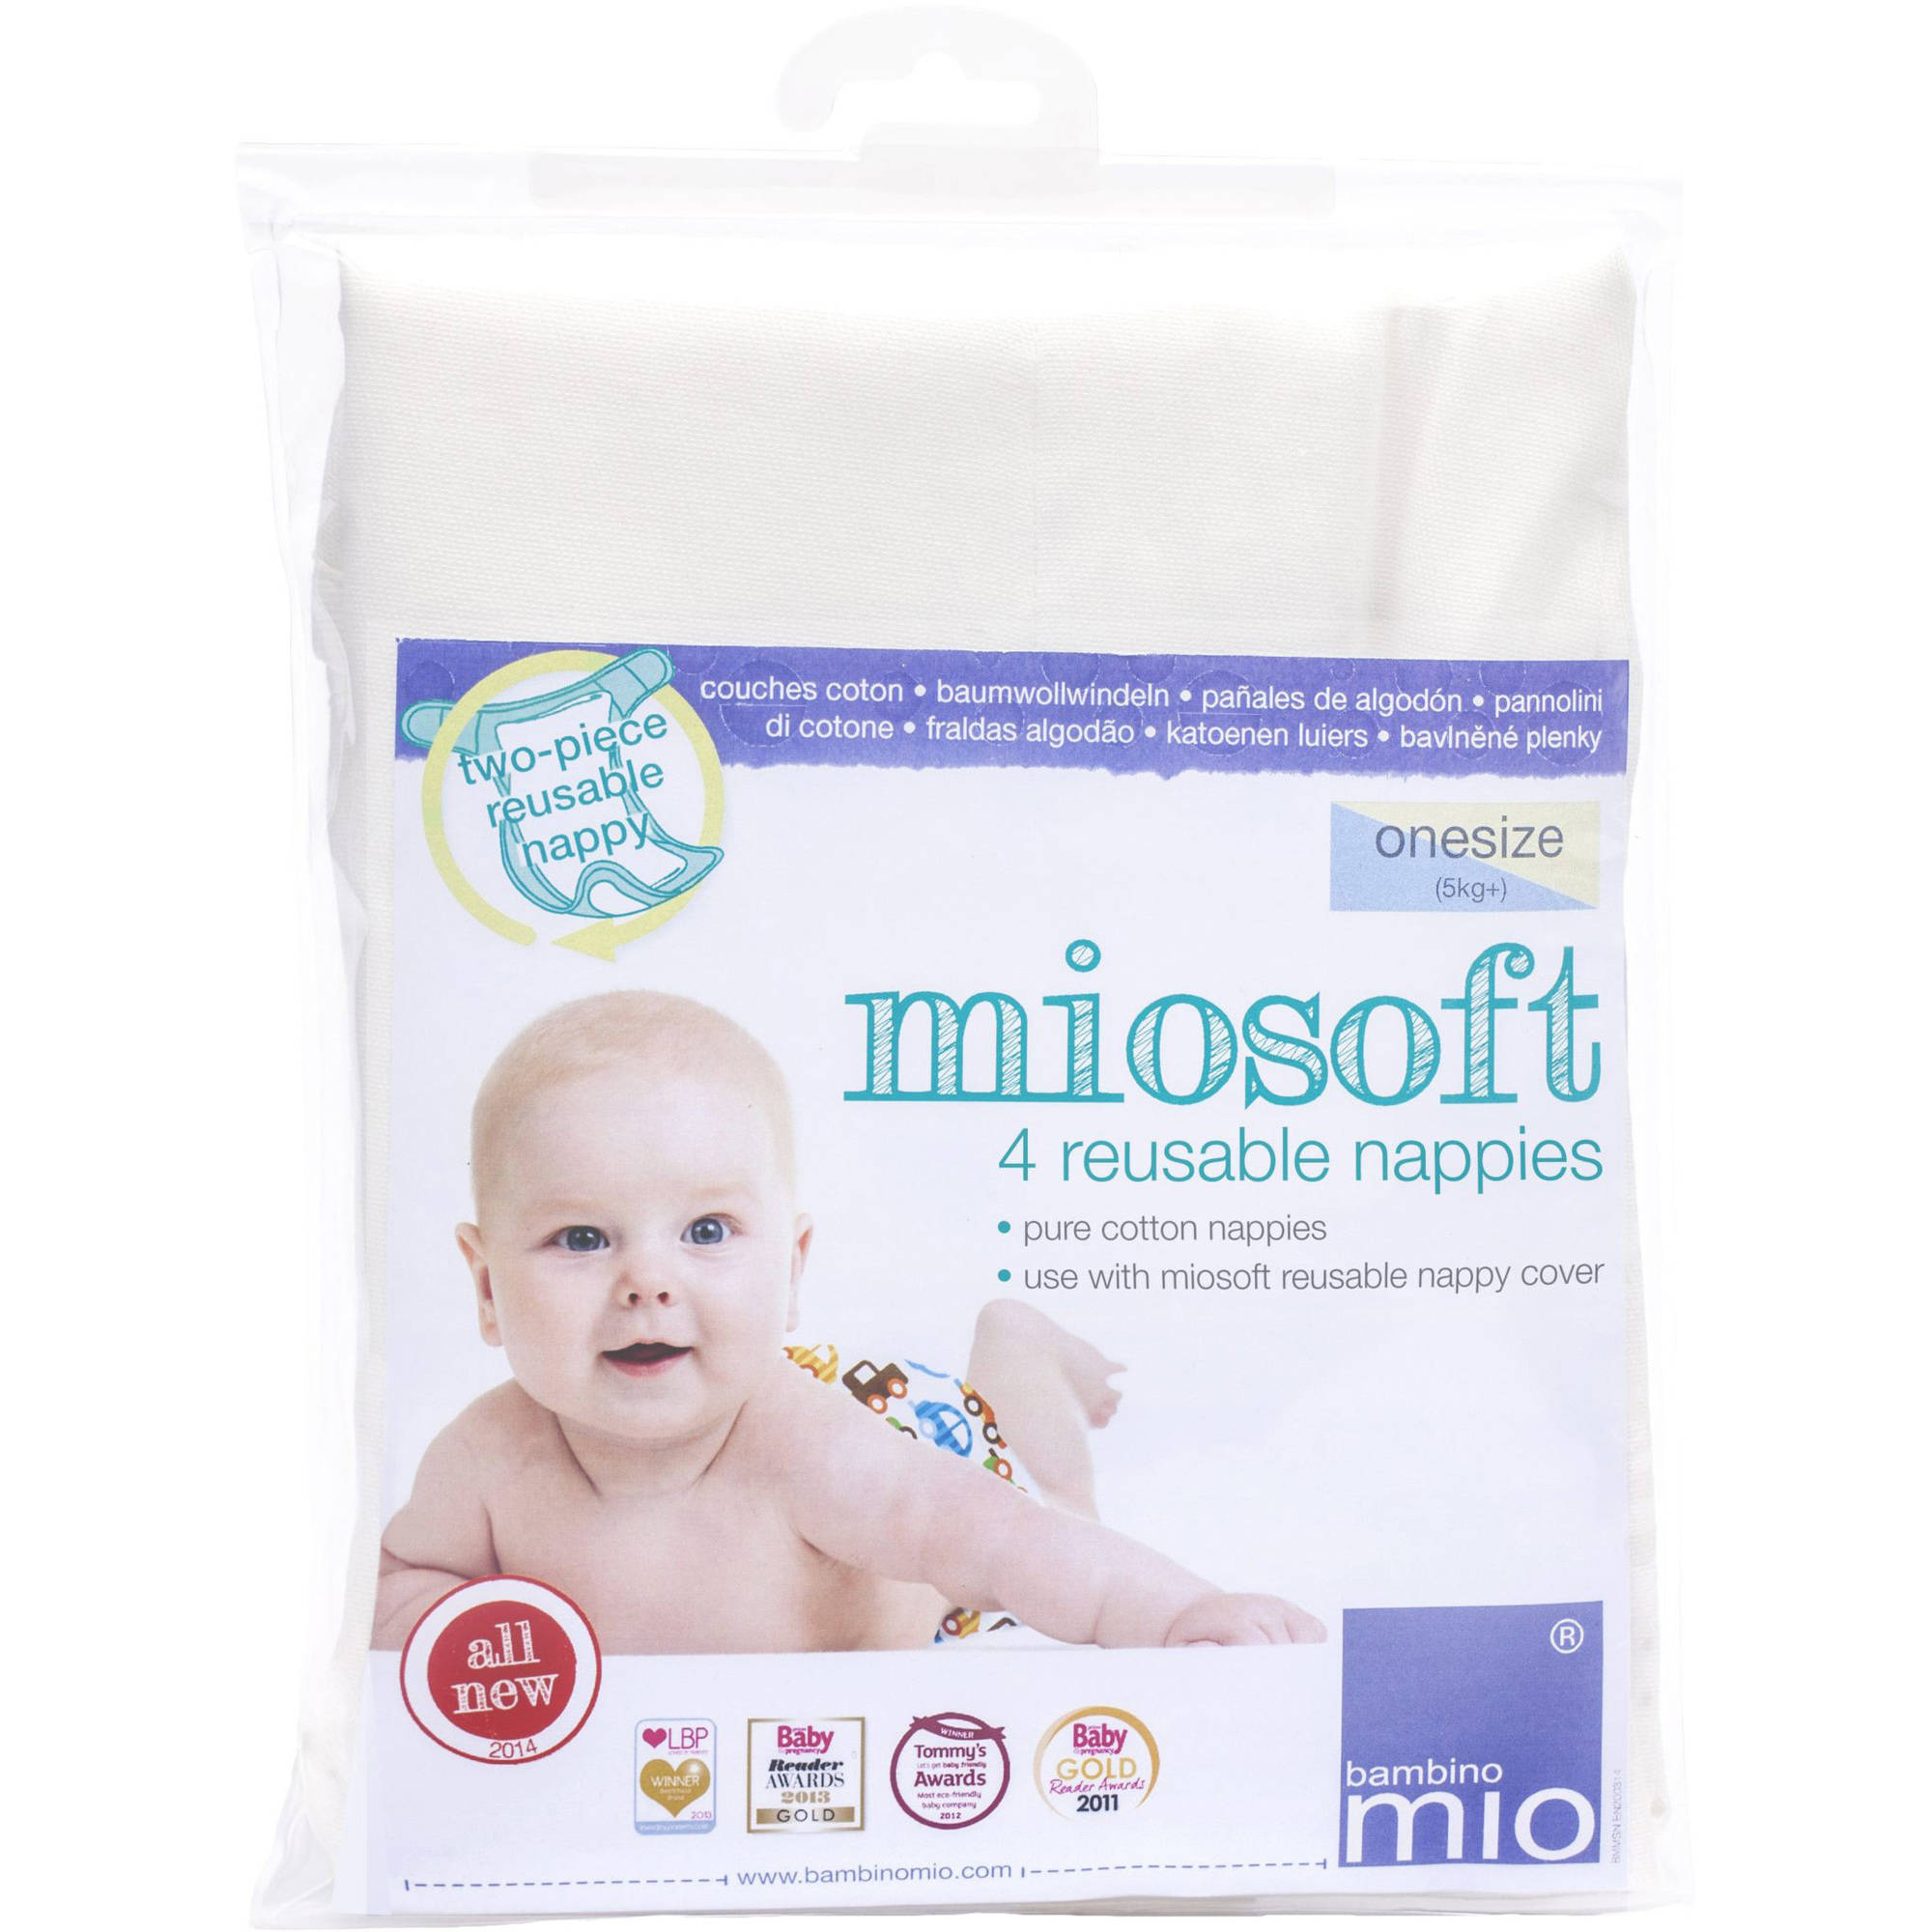 Bambino Mio Miosoft Reusable Diapers, One Size, 4 count